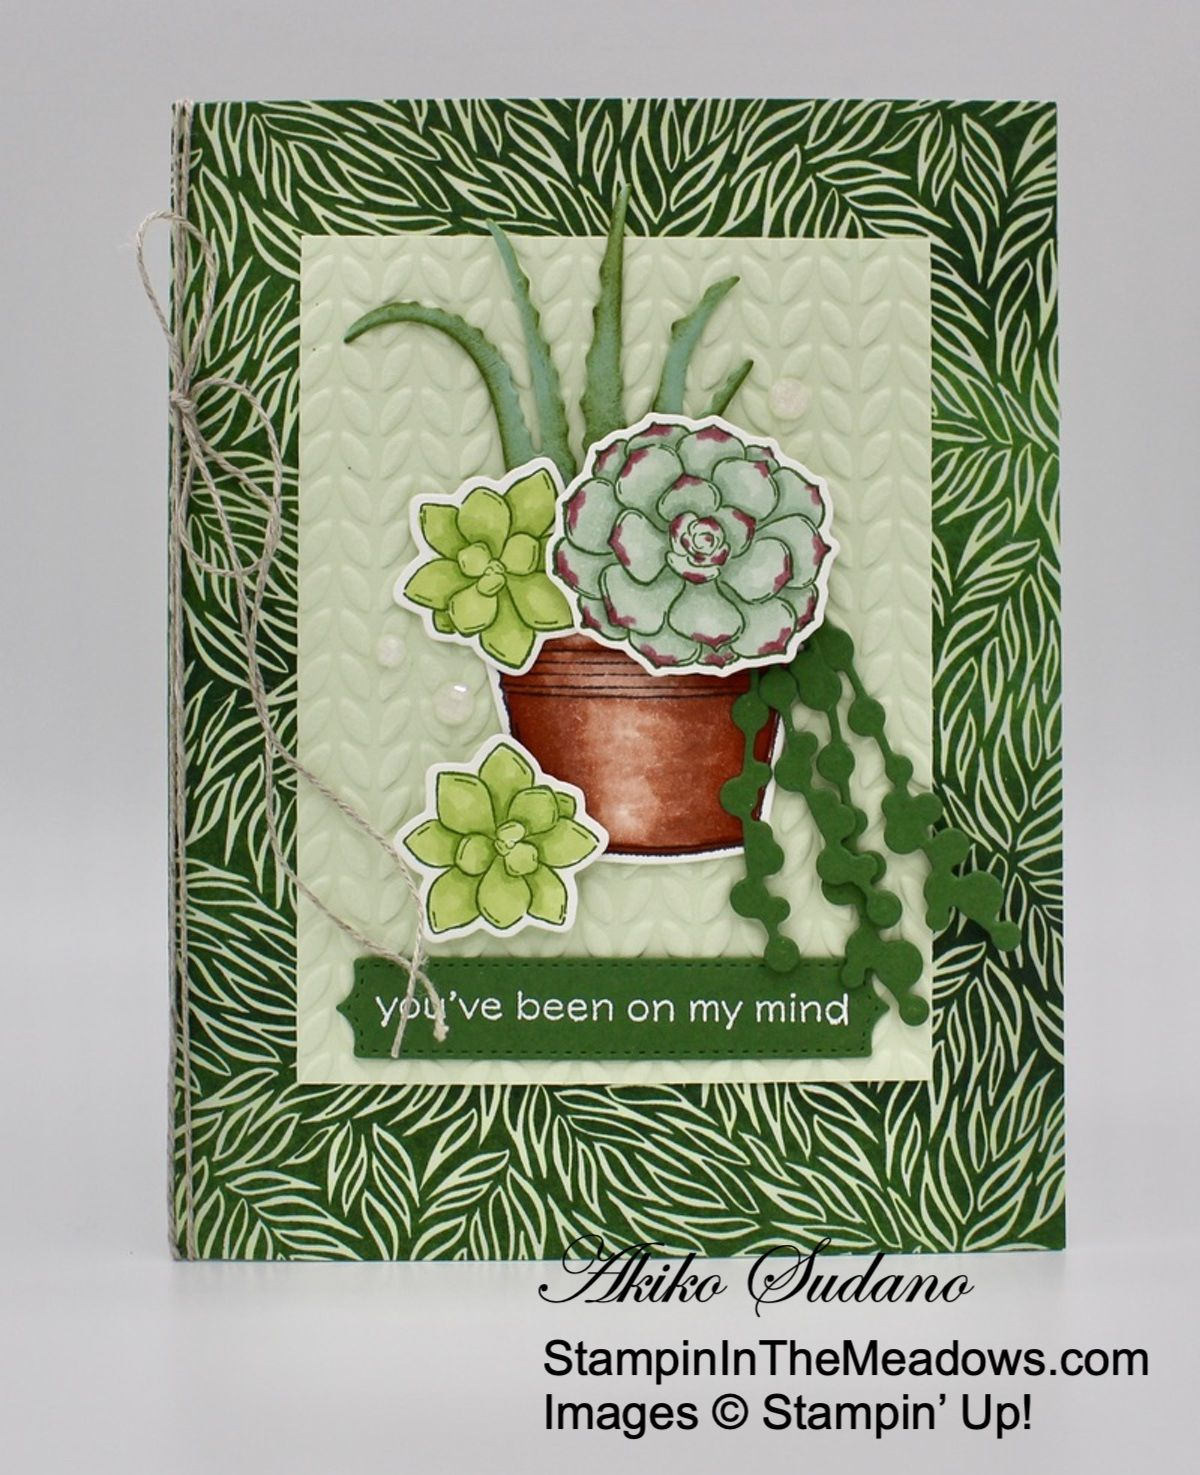 Stampin' Up! Simply Succulents Card